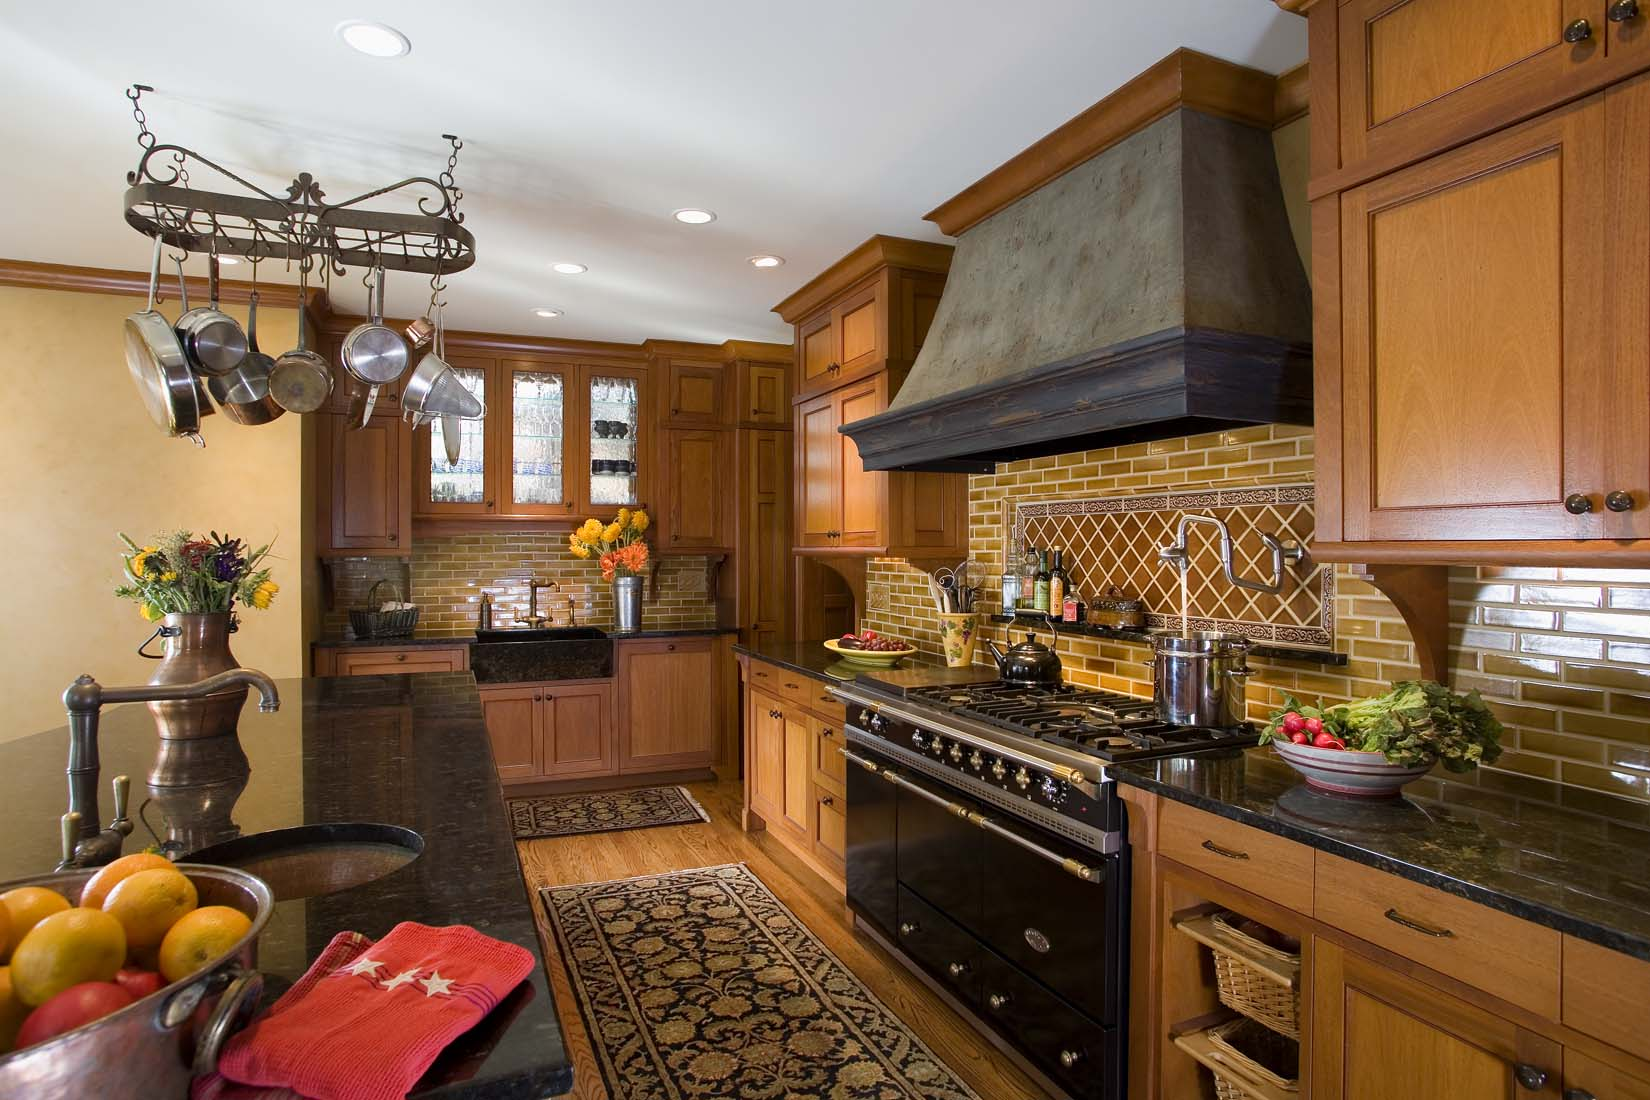 High end kitchen with large Lacance stove - Andrea Rugg ...